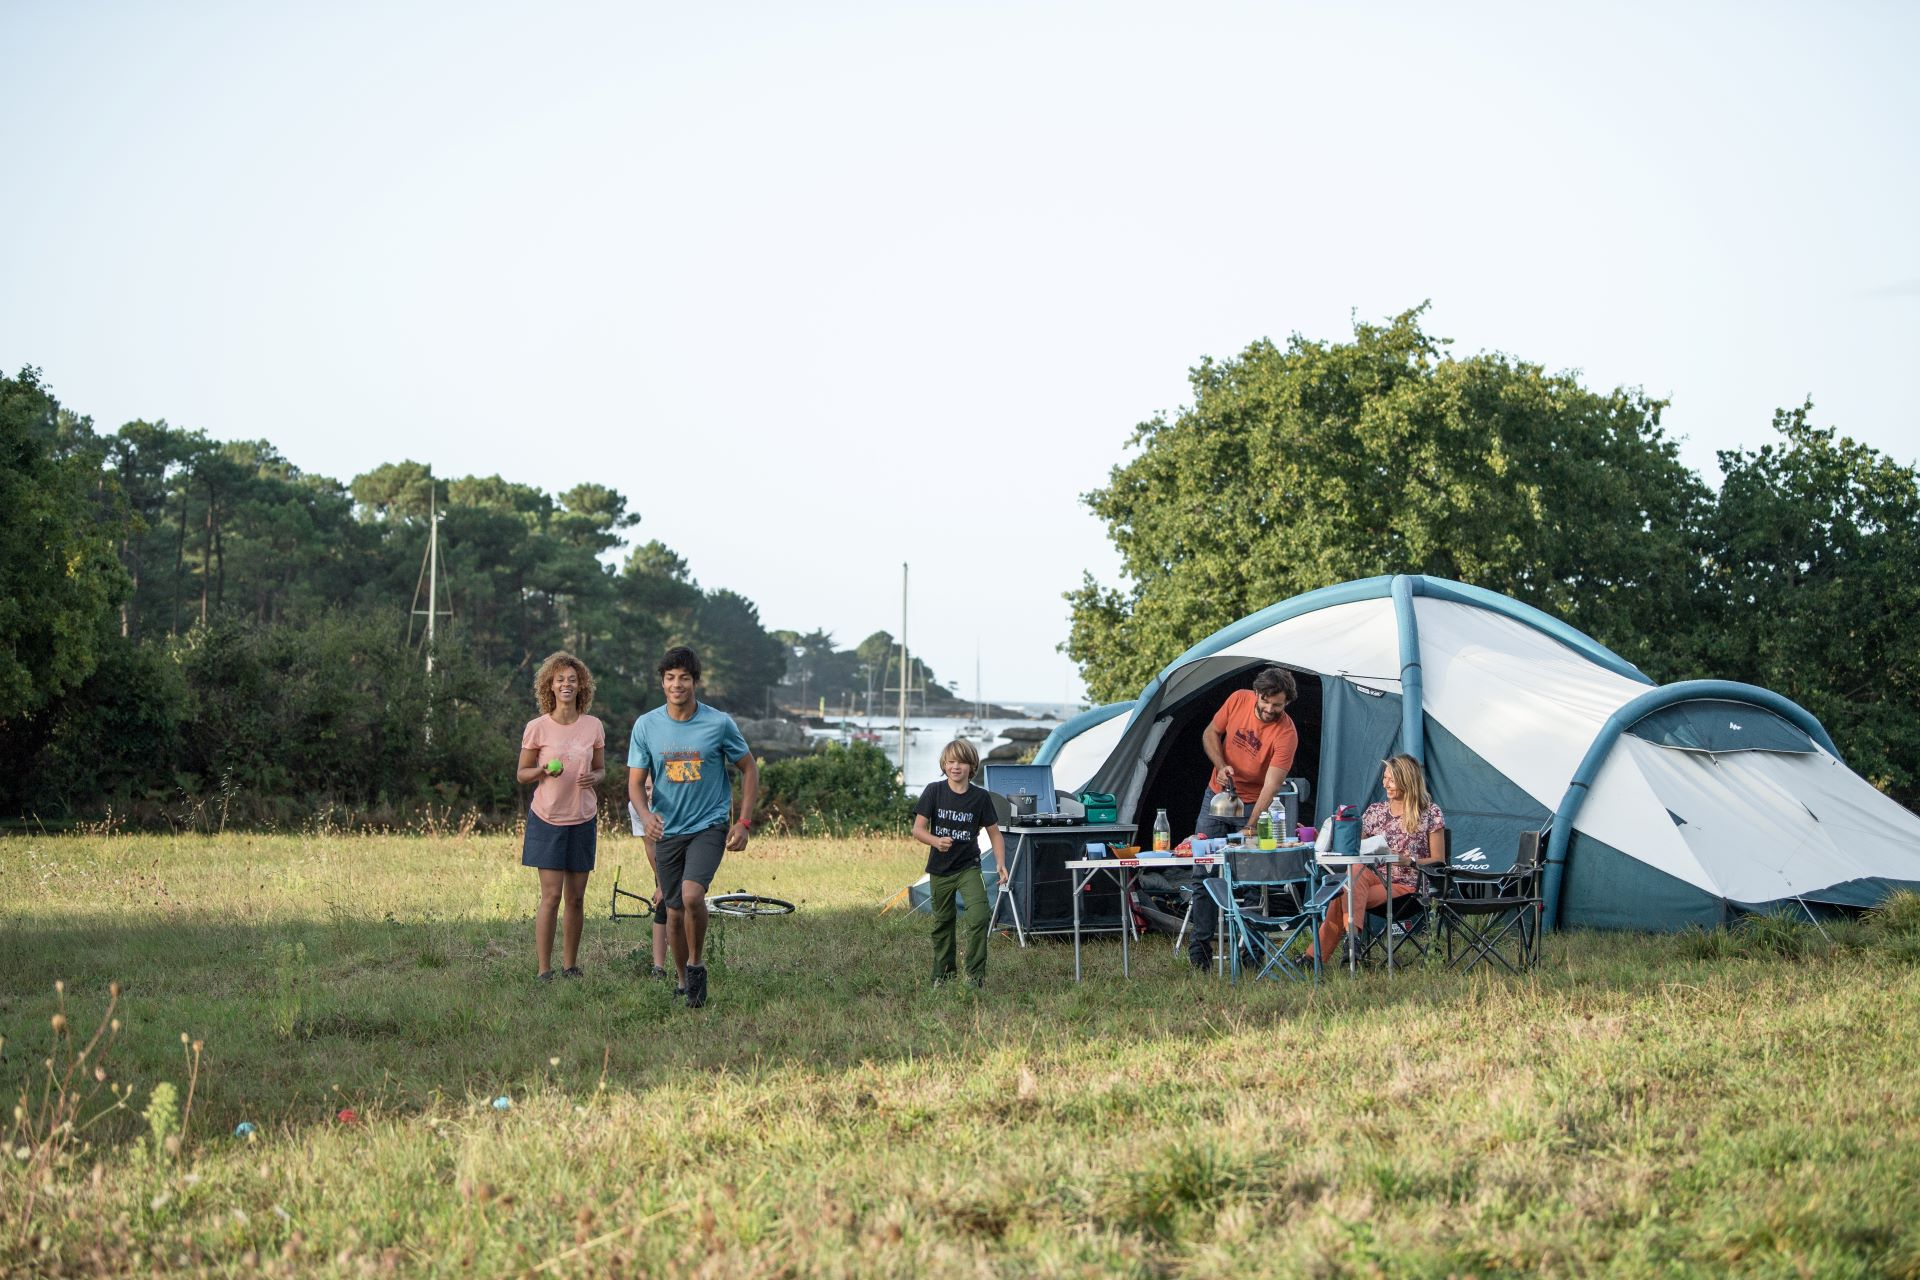 How To Choose The Right Family Camping Tent?